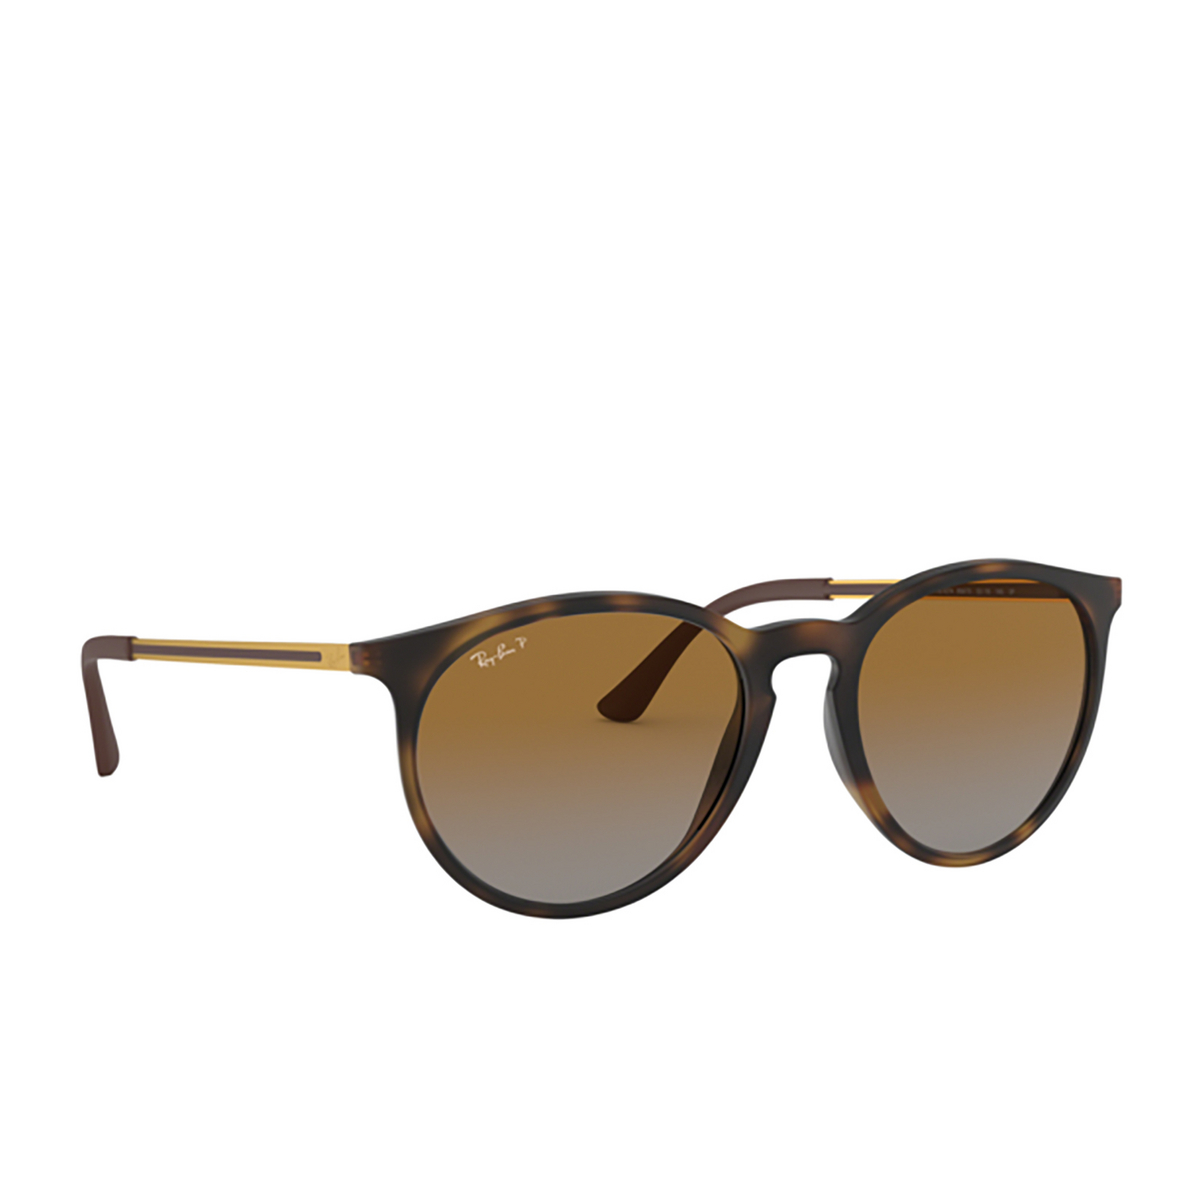 Ray-Ban® Round Sunglasses: RB4274 color Rubber Havana 856/T5 - 2/3.